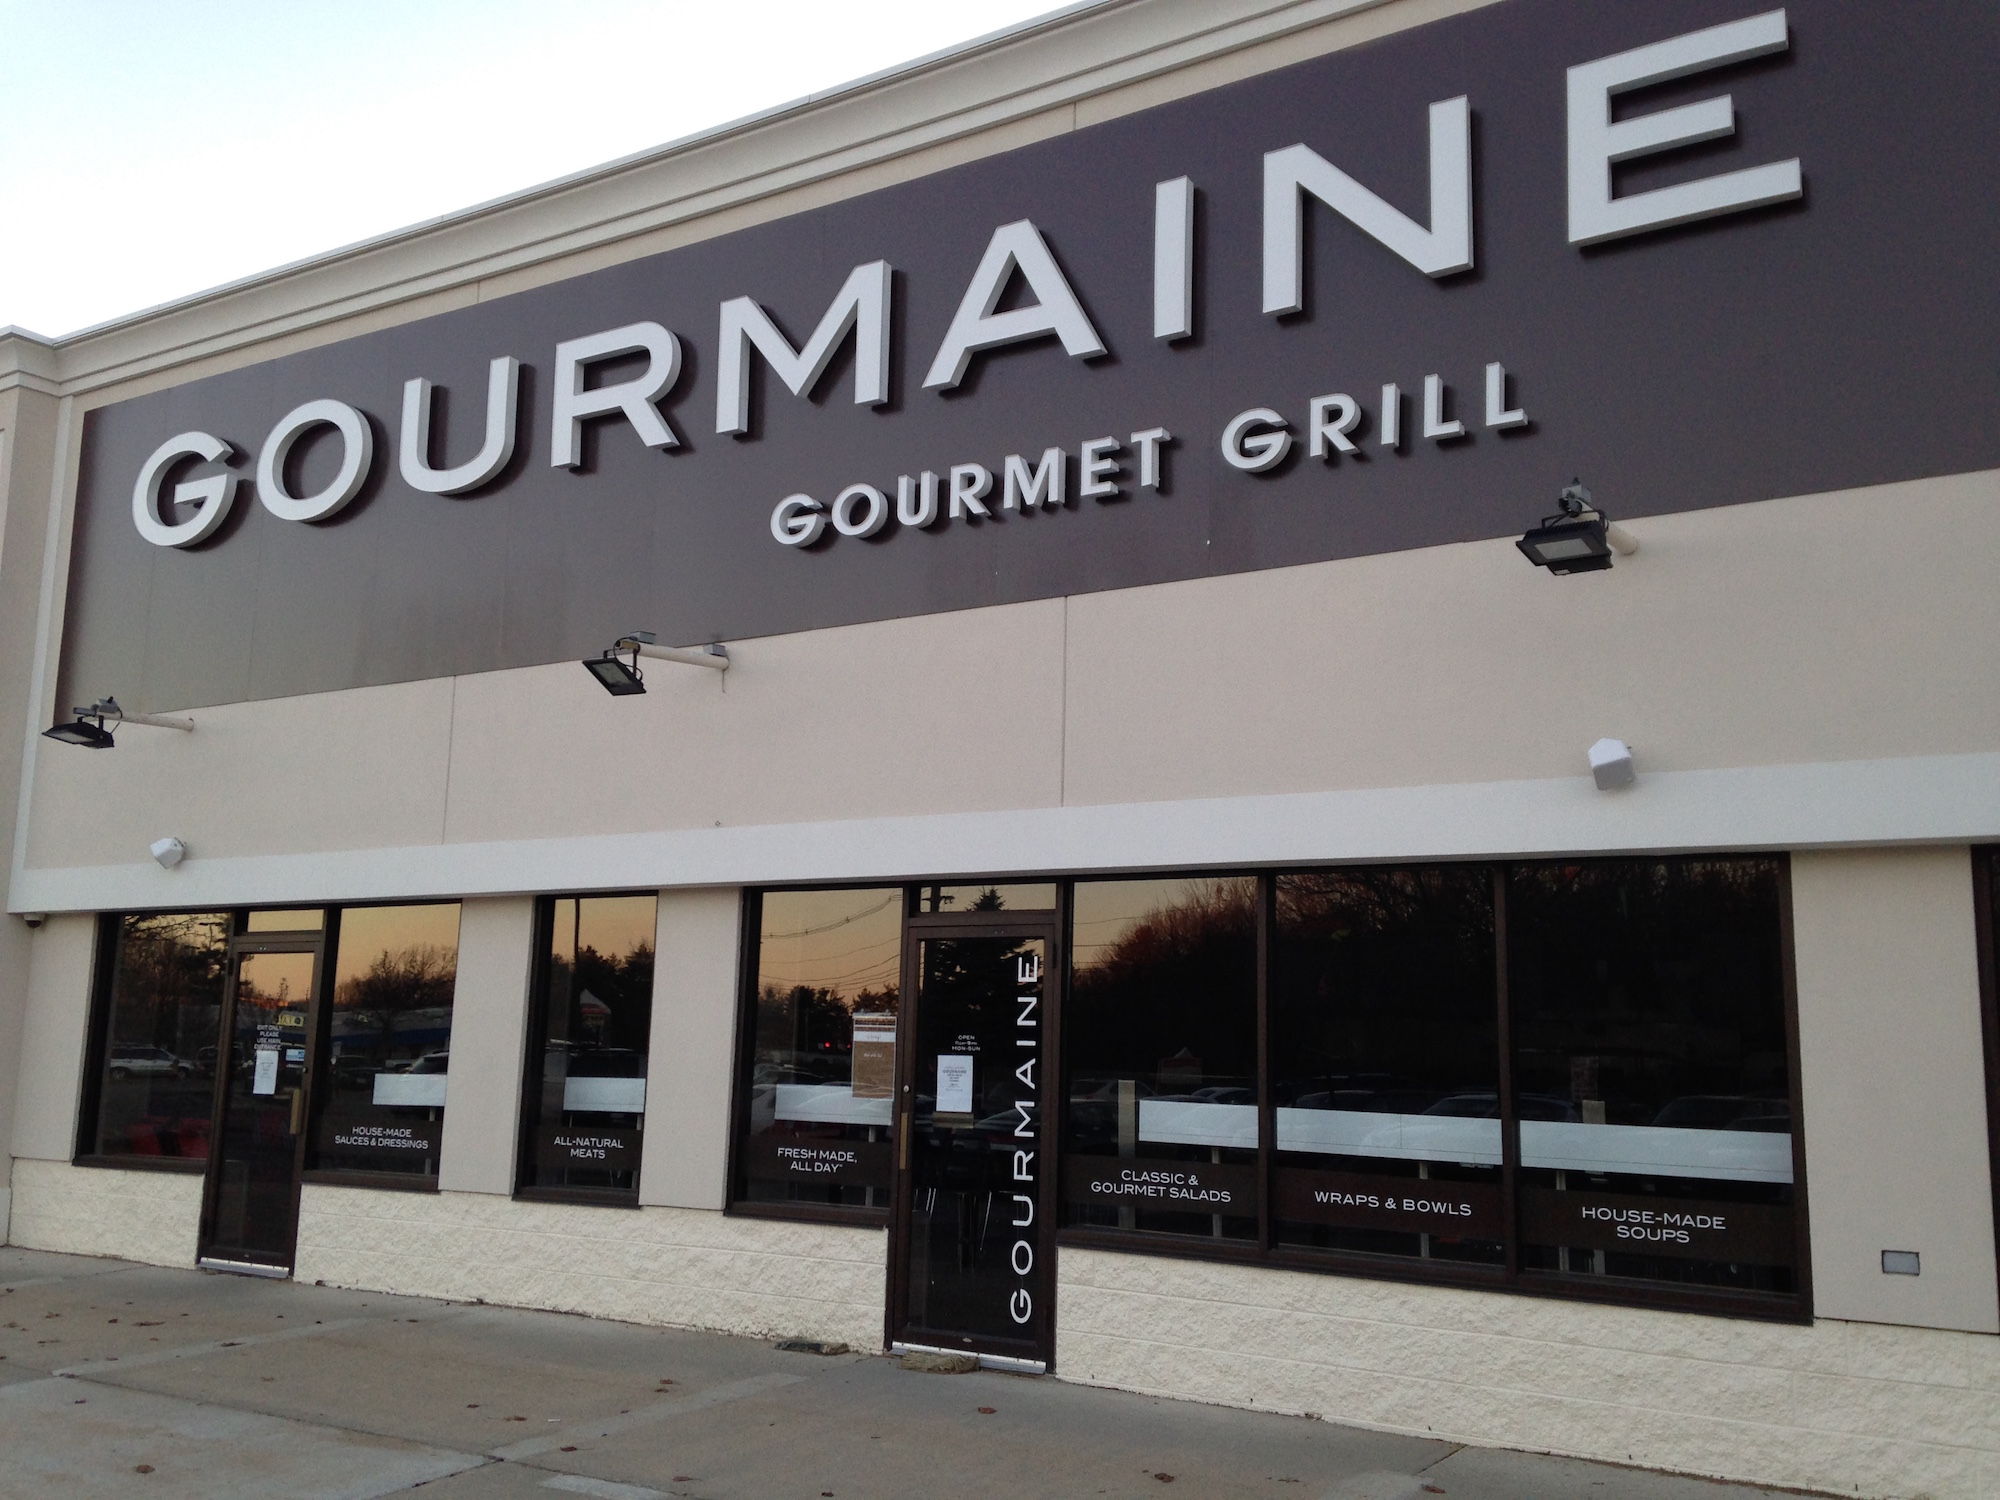 Burger chain b.good will replace Gourmaine next to the Olive Garden in South Portland.